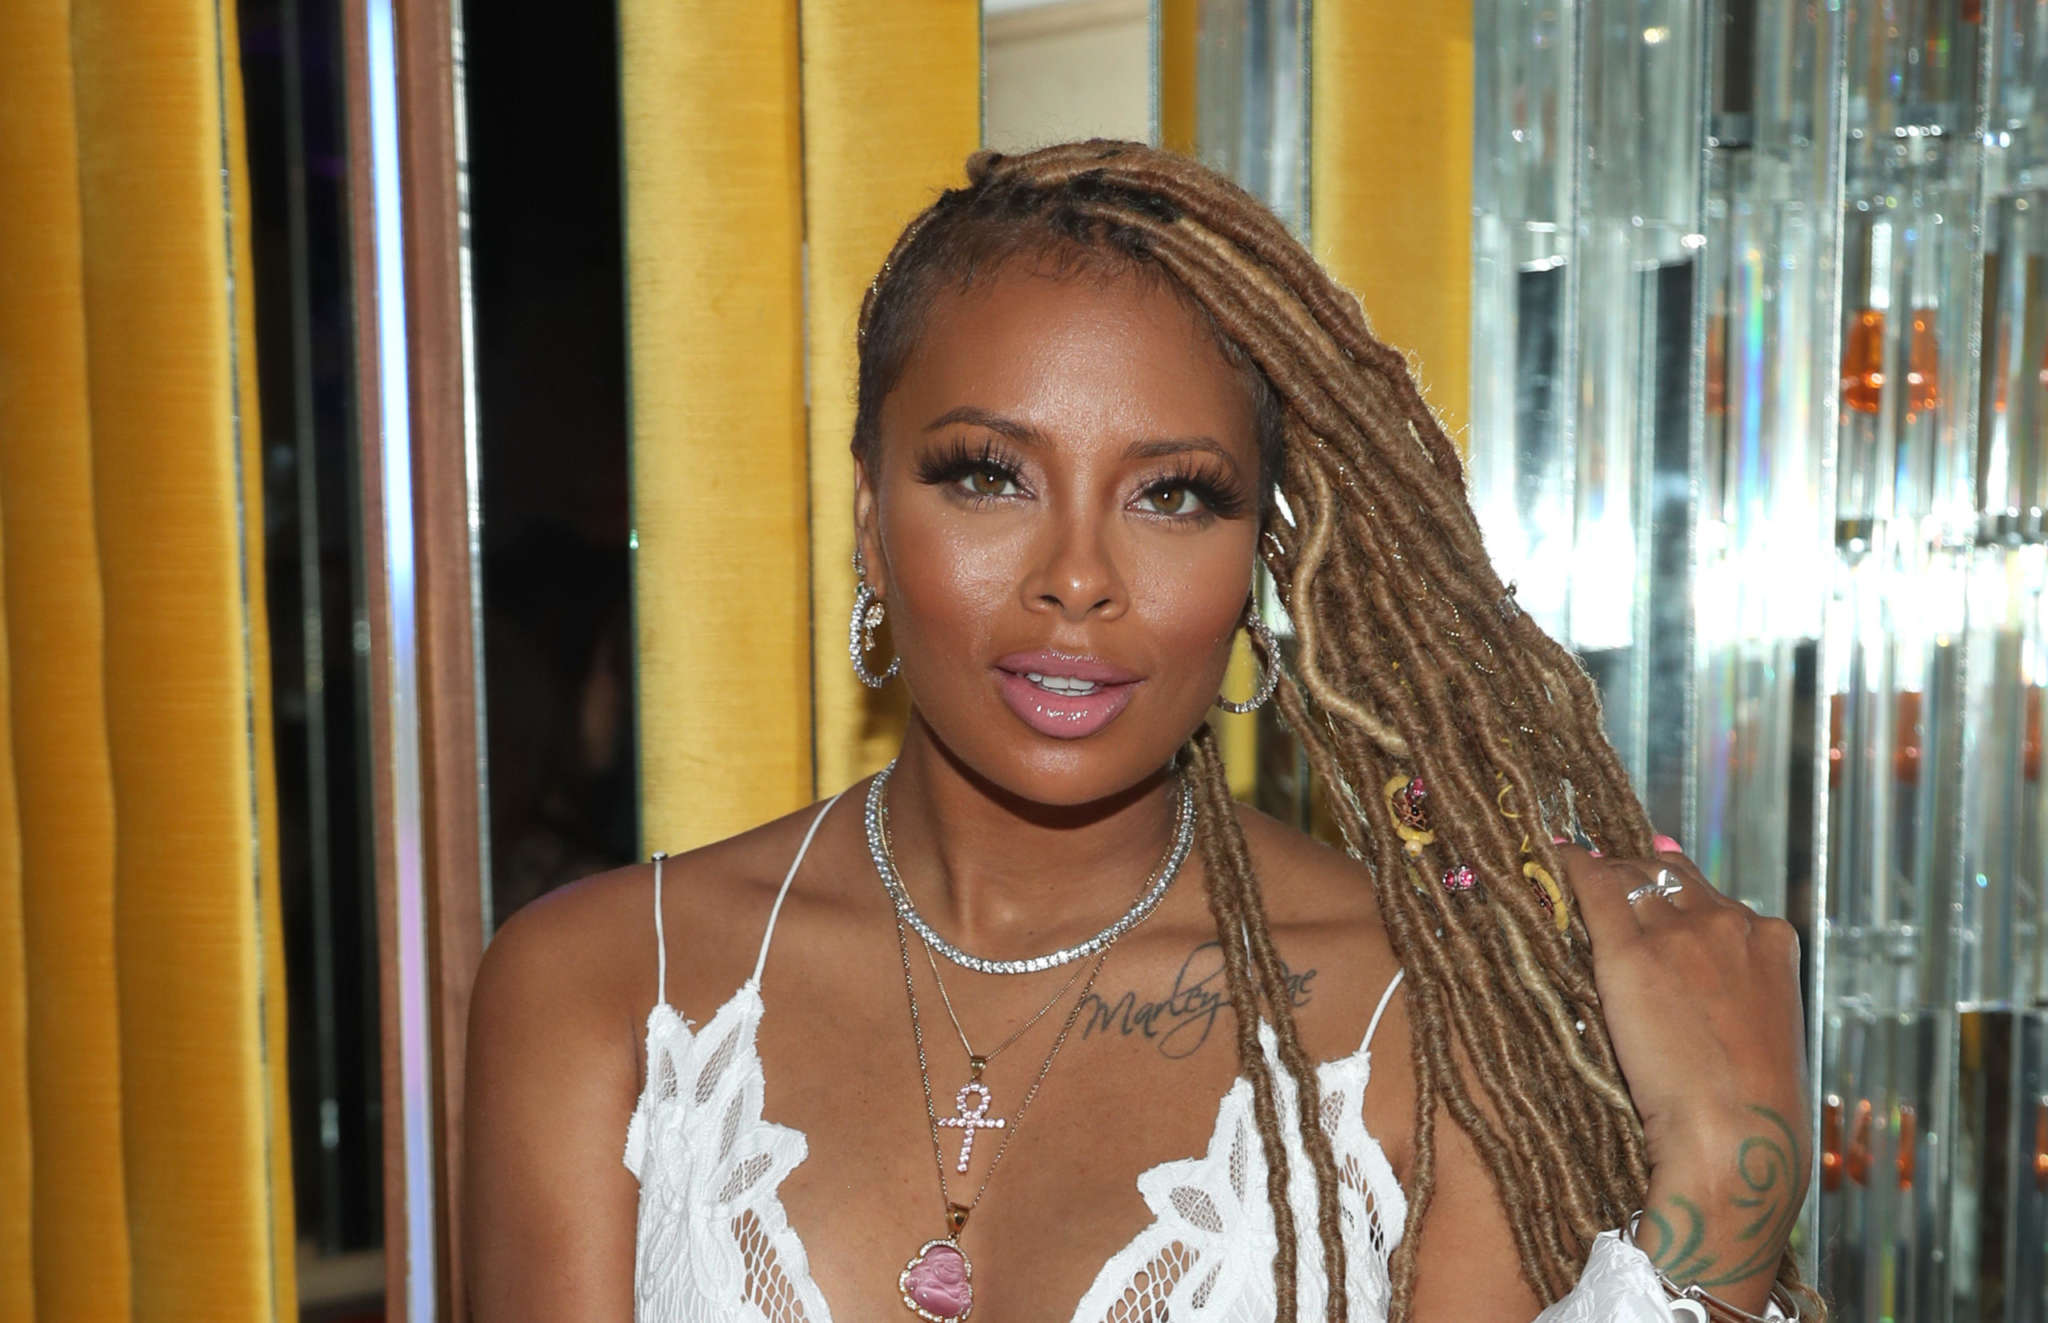 Eva Marcille Proudly Shares Her Look With Fans